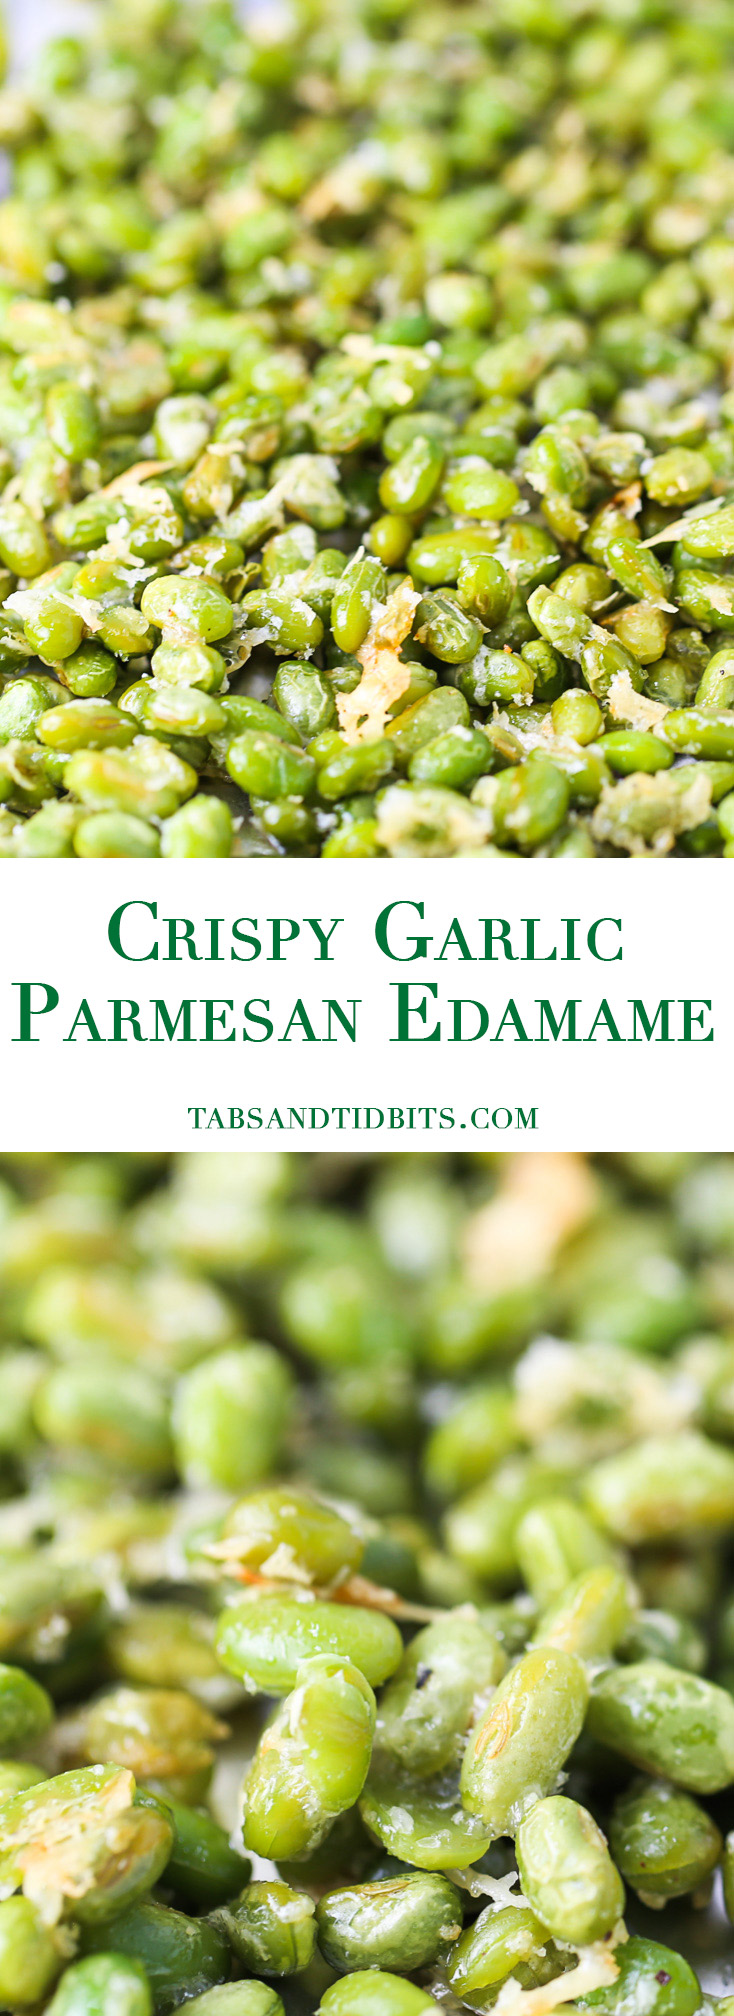 Crispy Garlic Parmesan Edamame - A delicious protein-packed snack that is delicious and healthy!